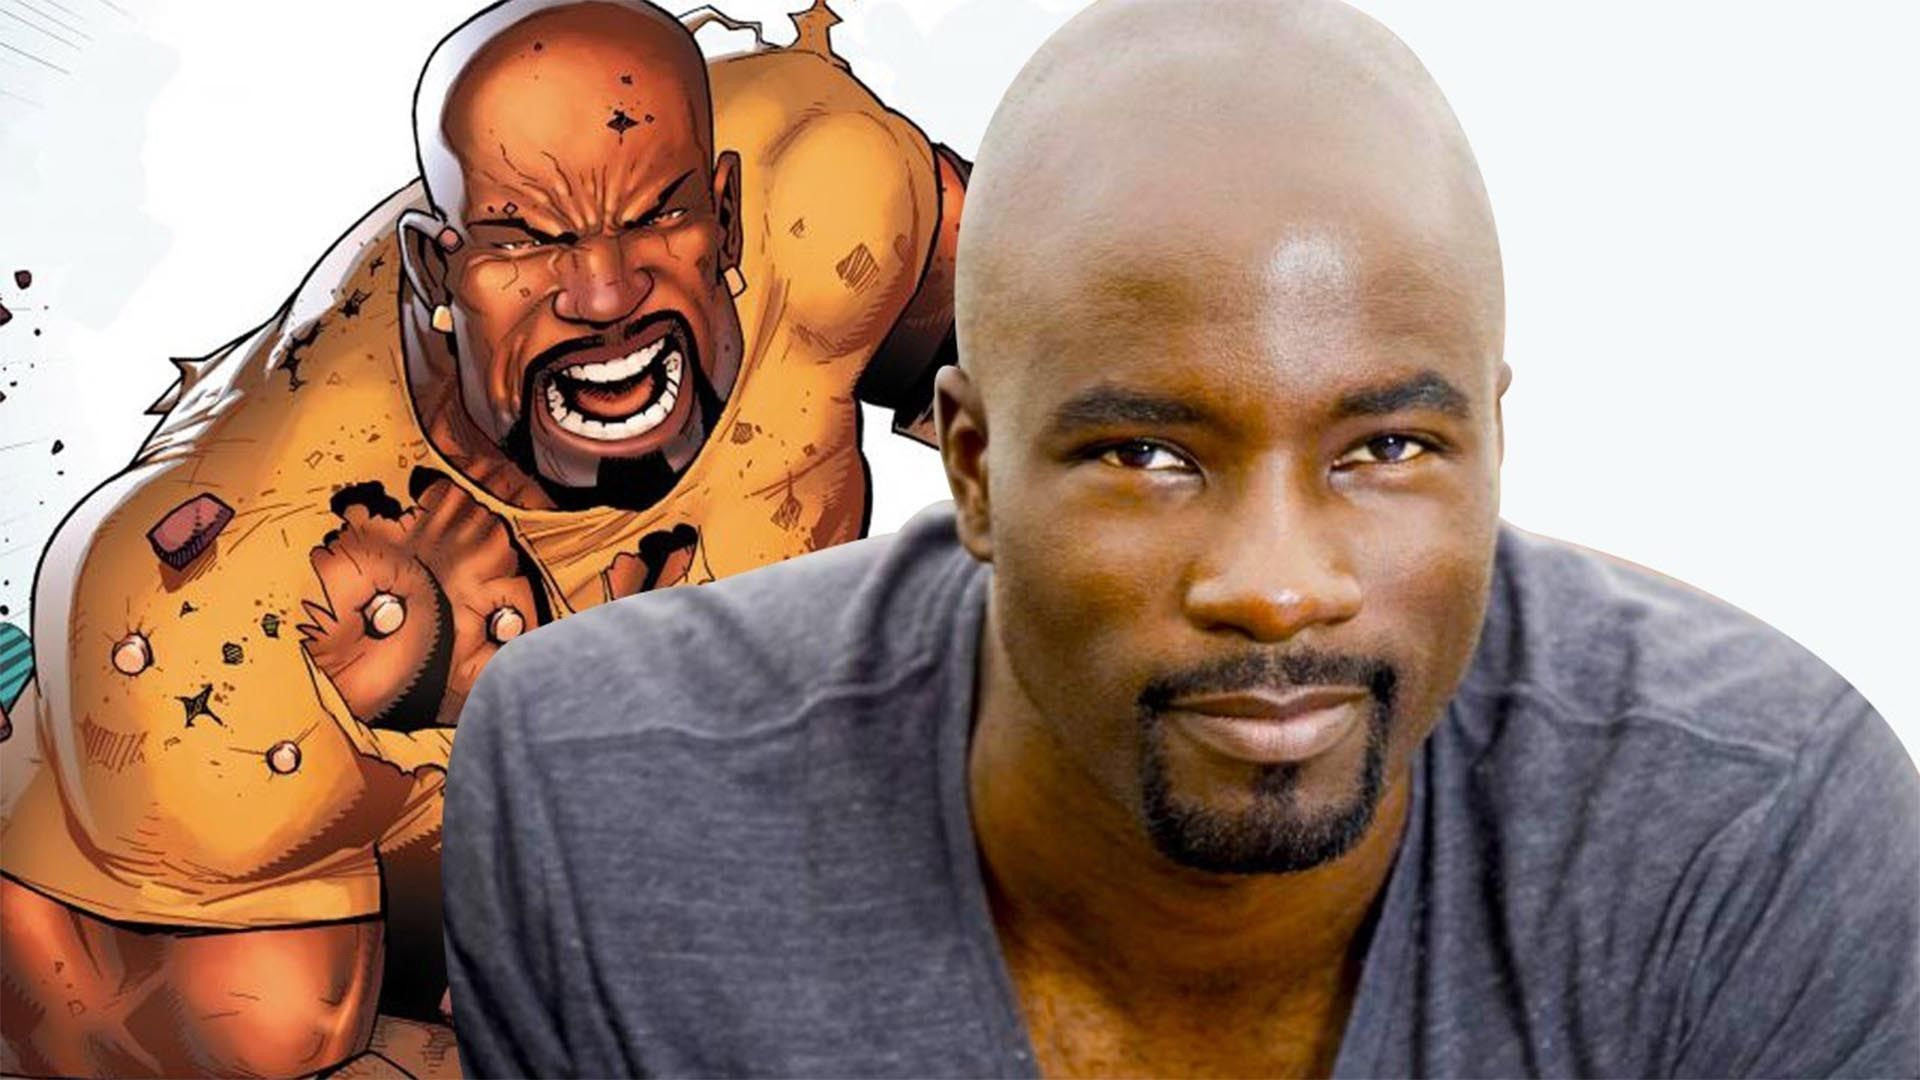 Amazing Wallpaper Marvel Luke Cage - 06122341f1b86e89220e87f7697db167  Snapshot_93861.jpg